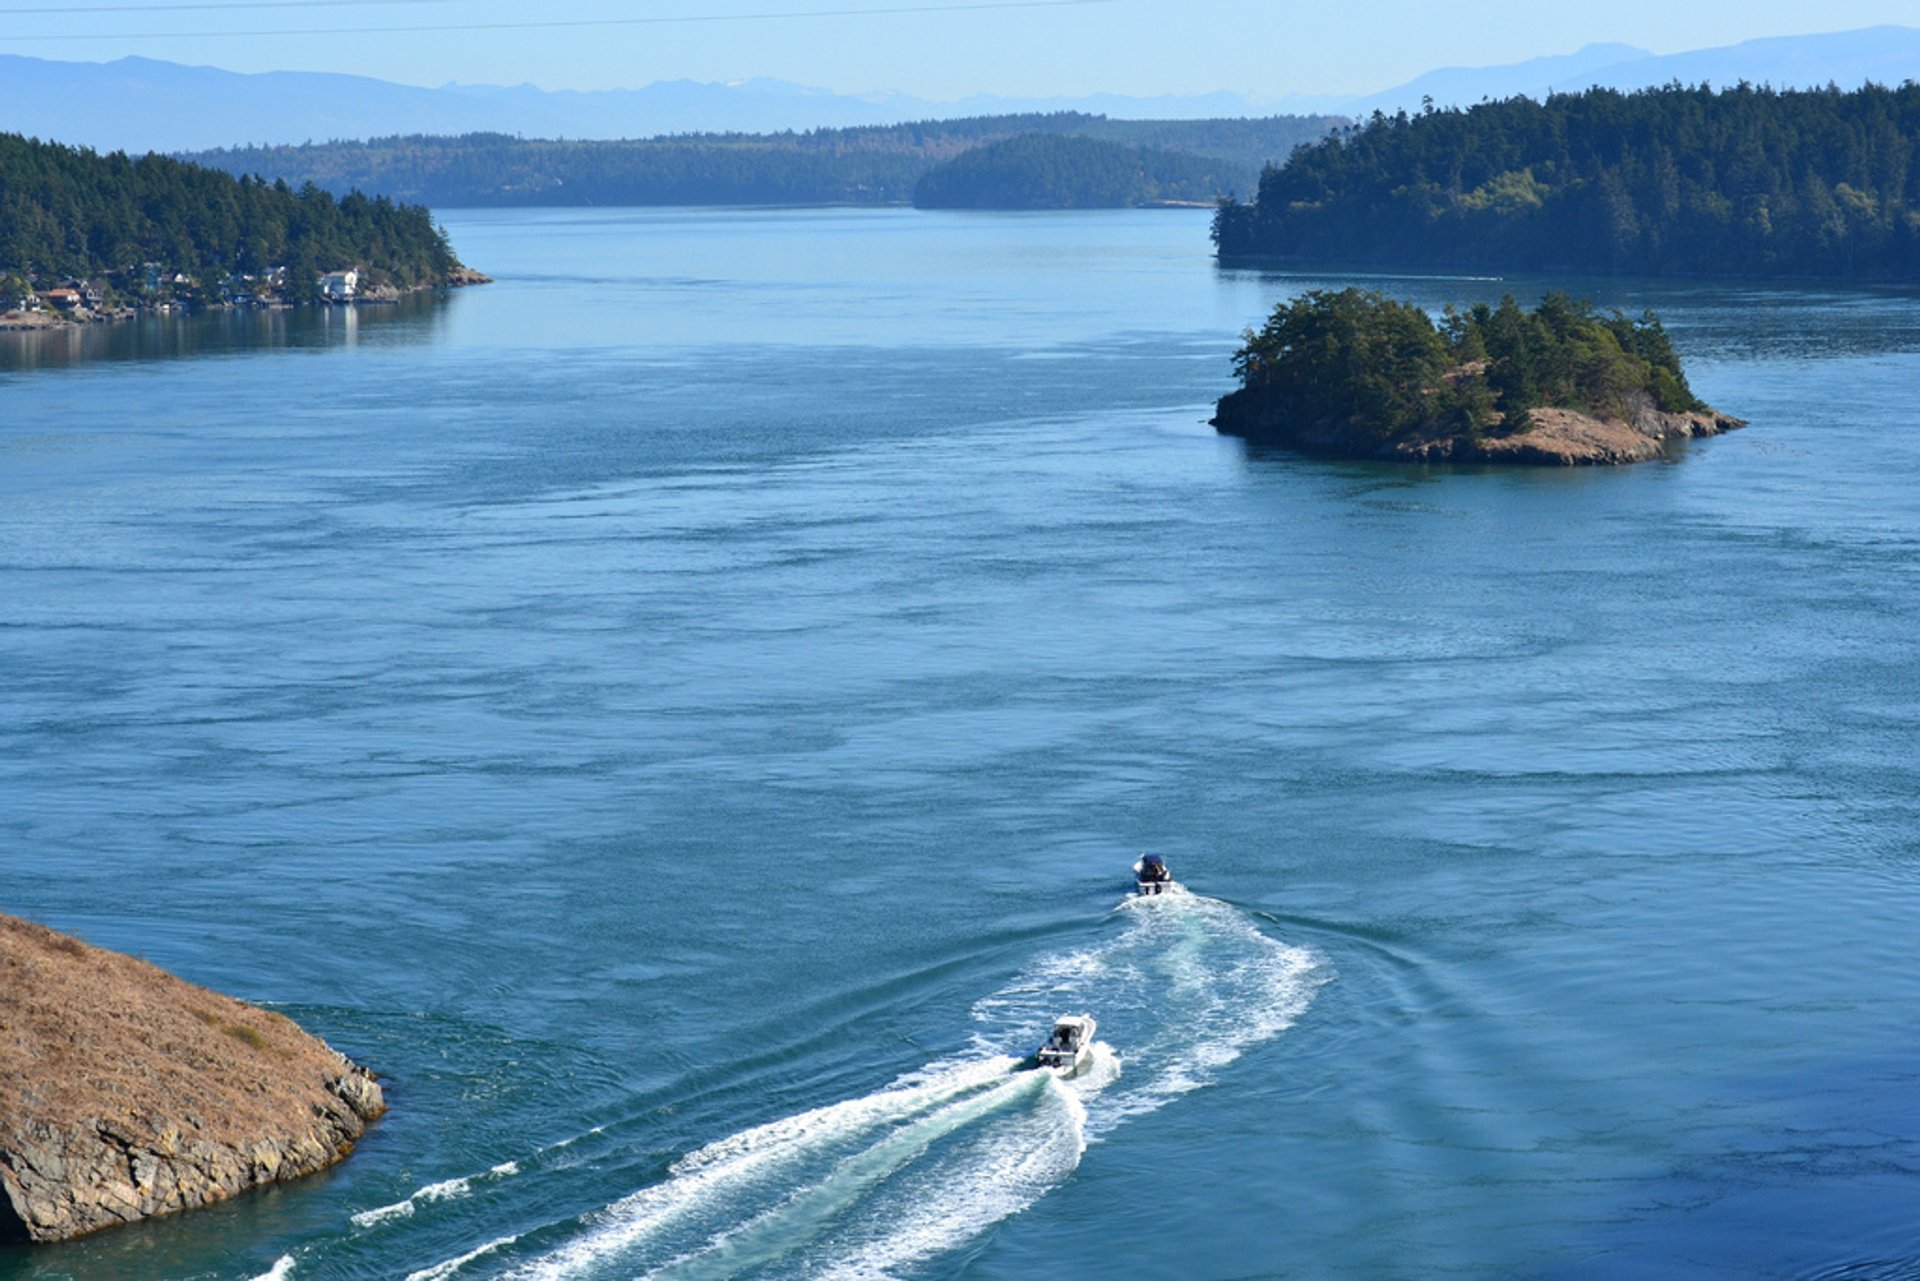 This is looking east from the Deception Pass Bridge in Washington state. The body of water is called Deception Pass and then Skagit Bay. 2020